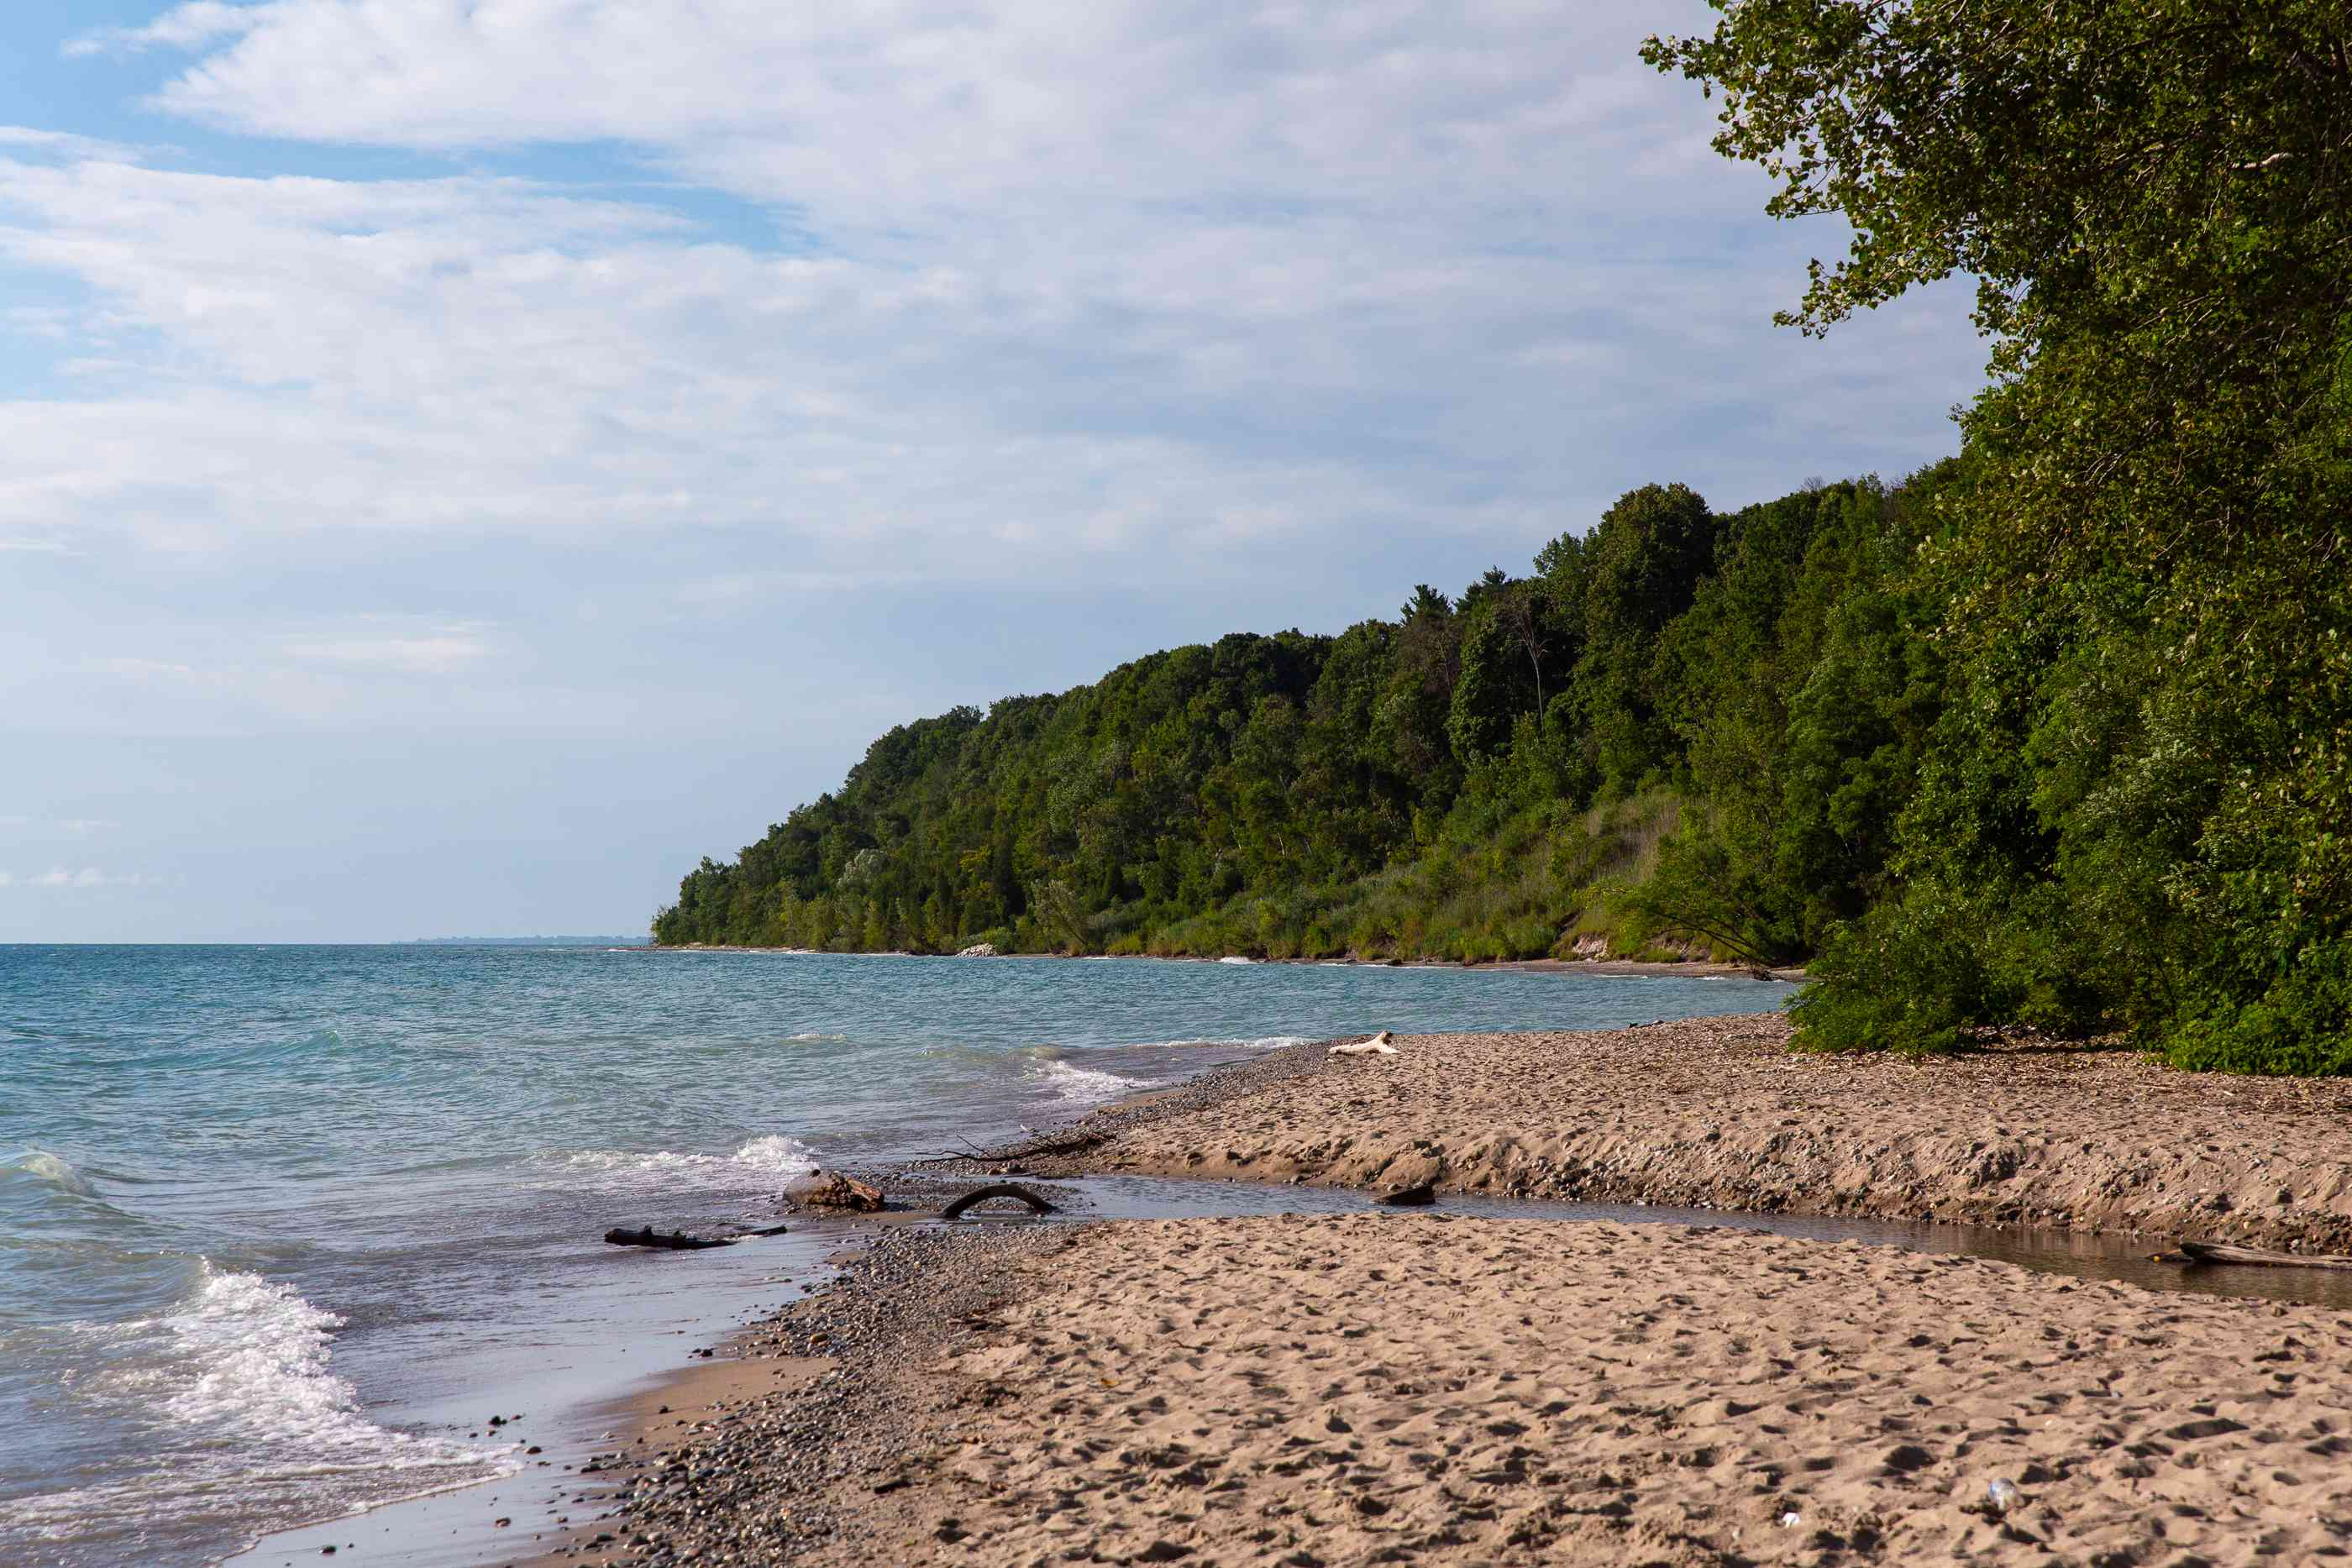 An empty beach surrounded by green trees